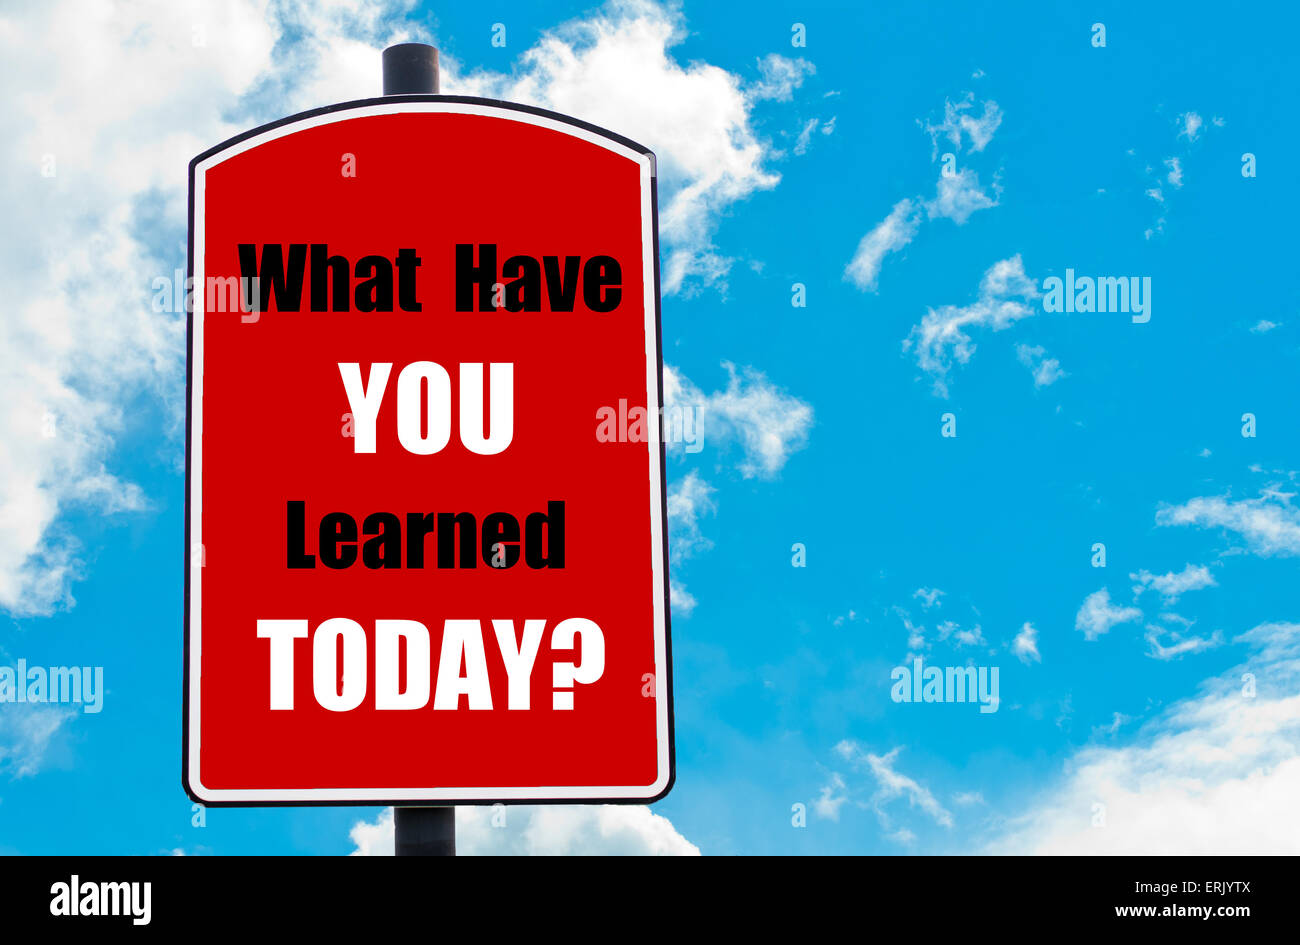 What Have You Learned Today? motivational quote written on red road sign isolated over clear blue sky background. - Stock Image